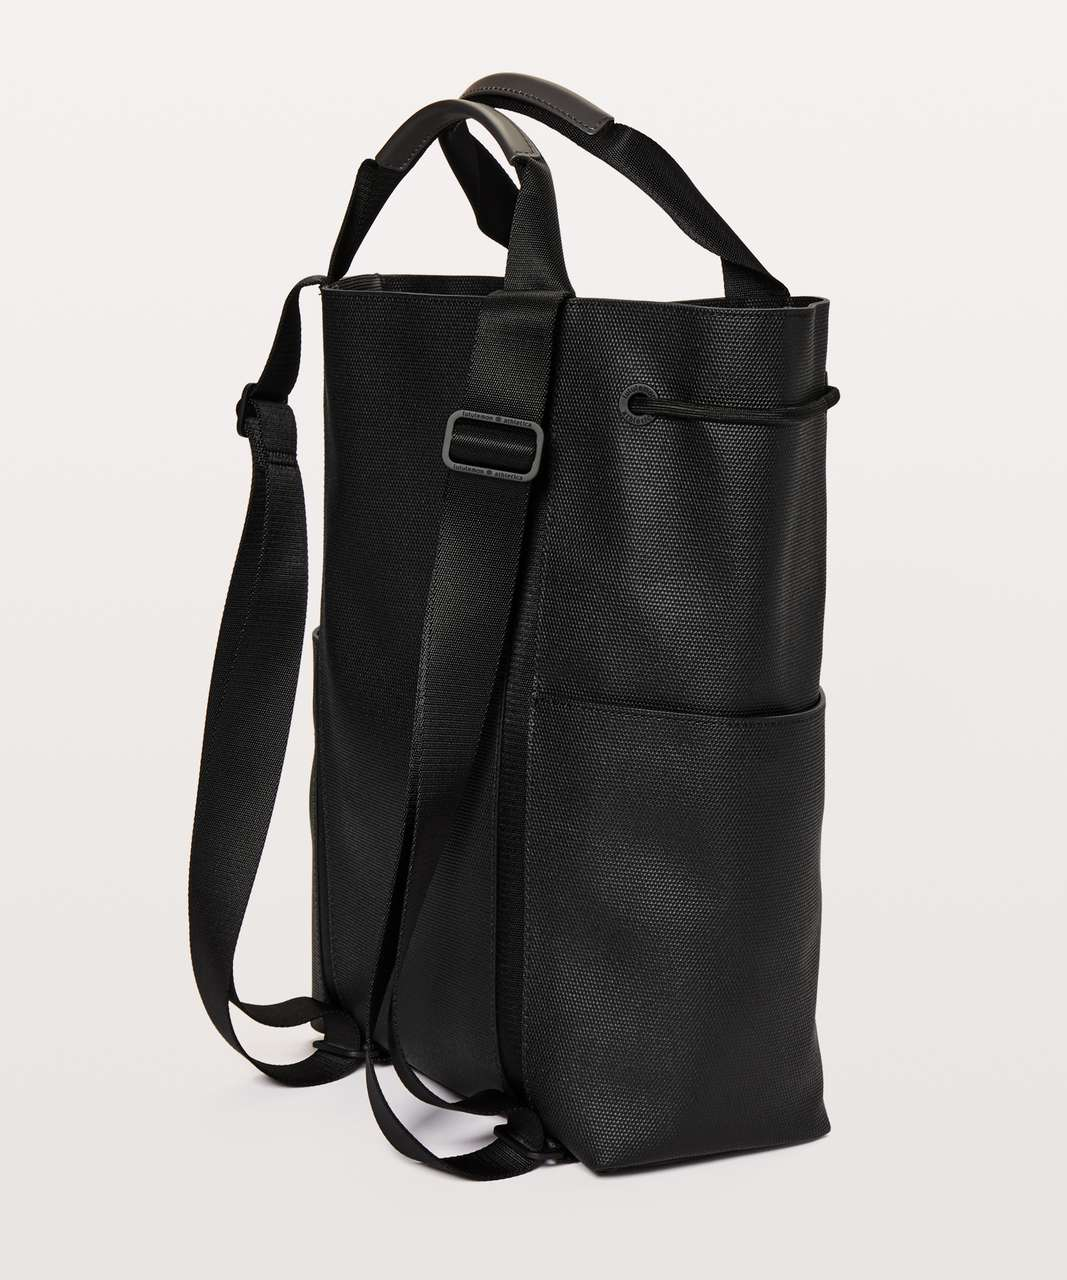 Lululemon Day Out Backpack *16L - Black